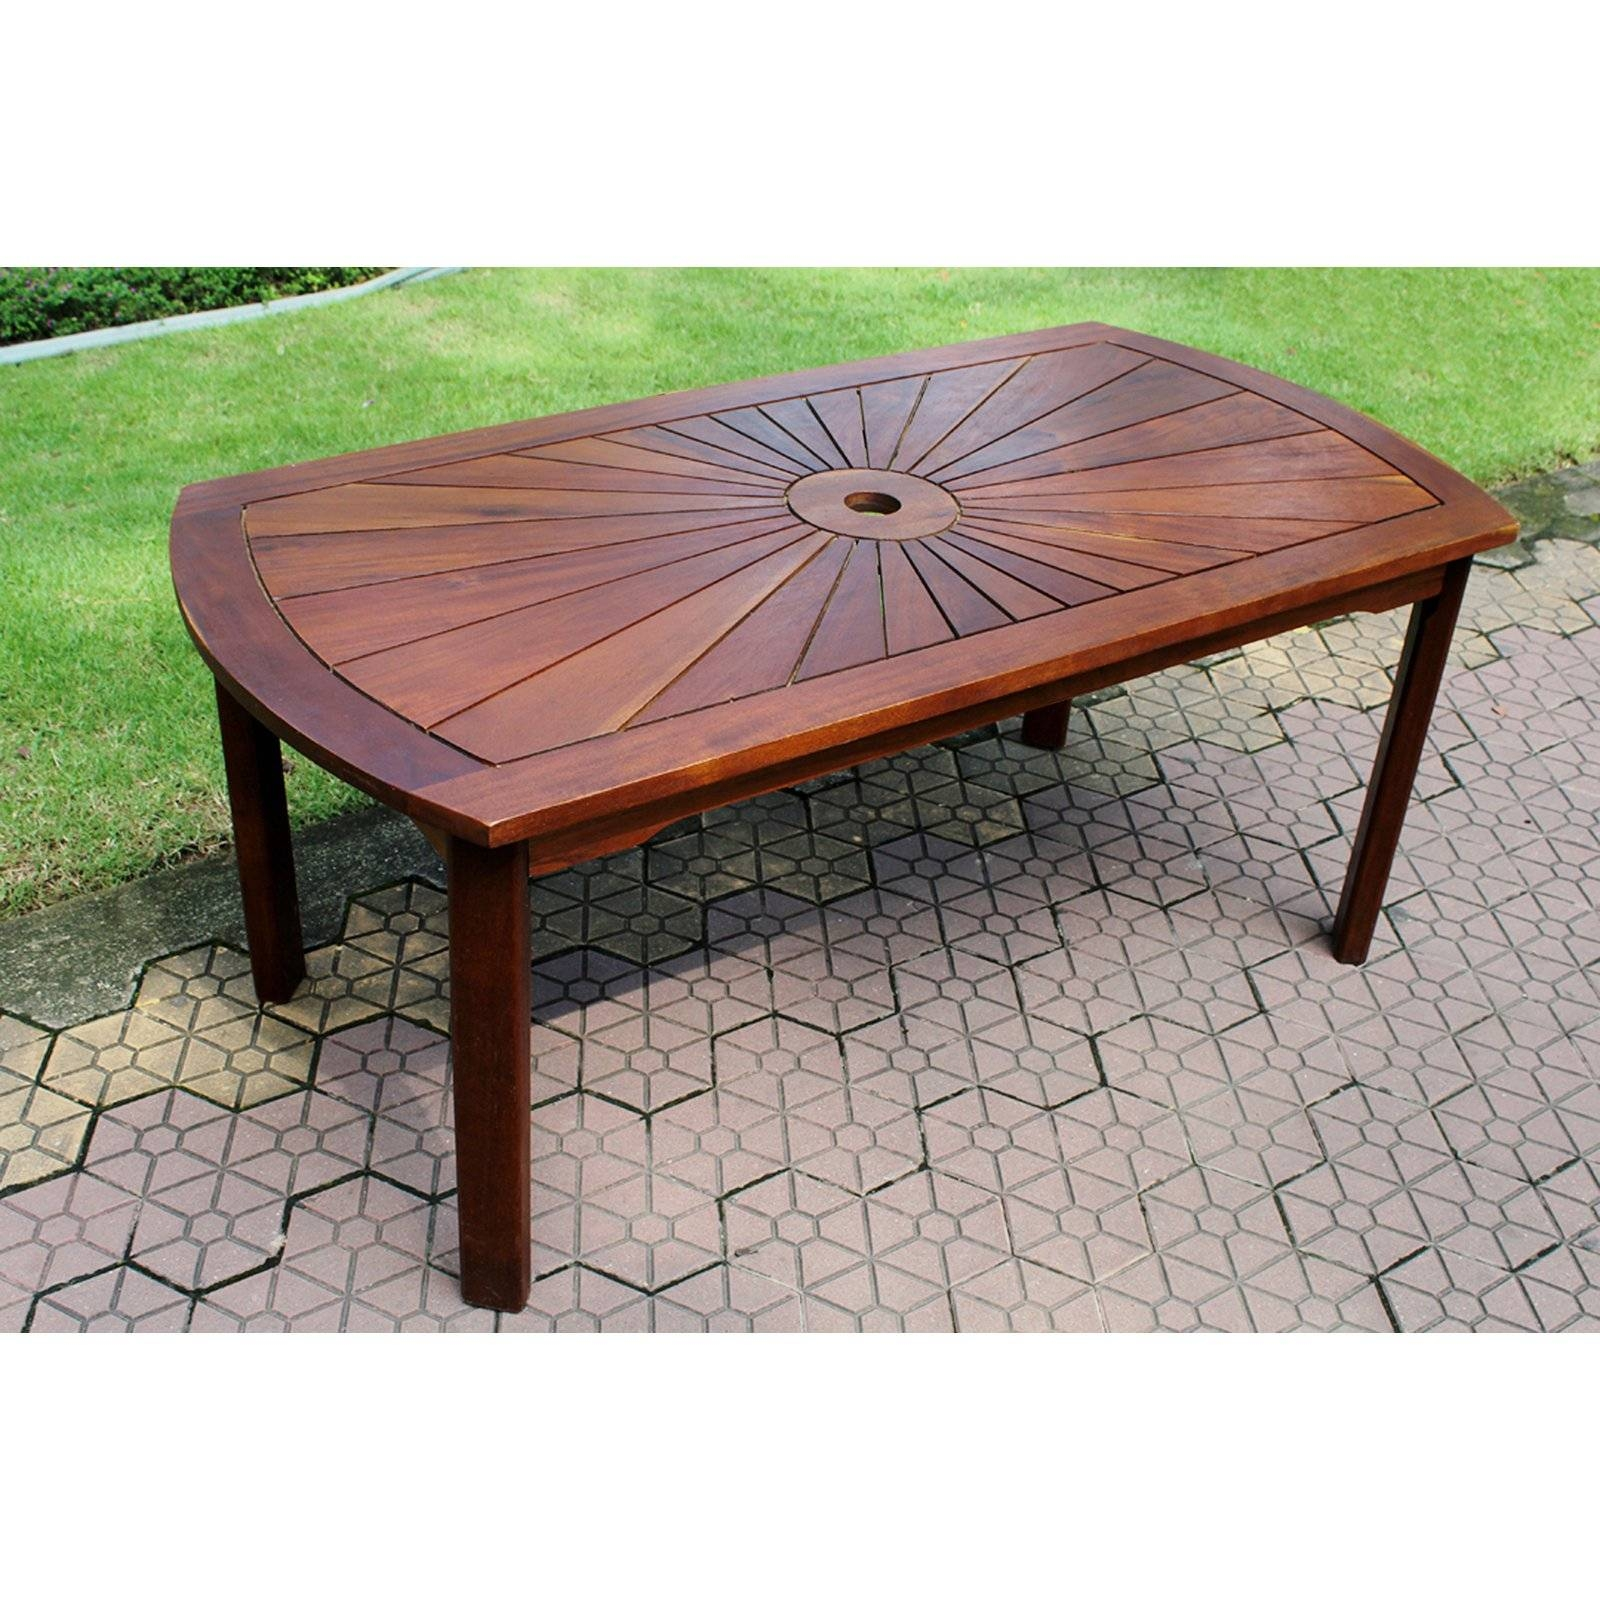 International Caravan Highland Acacia Sunburst Patio Garden Coffee pertaining to Wooden Garden Coffee Tables (Image 16 of 30)